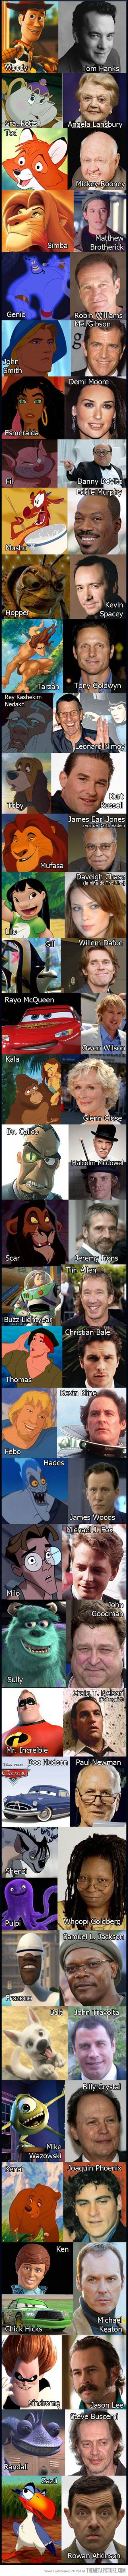 Disney characters and their real faces… some of these I did not know, interesting!